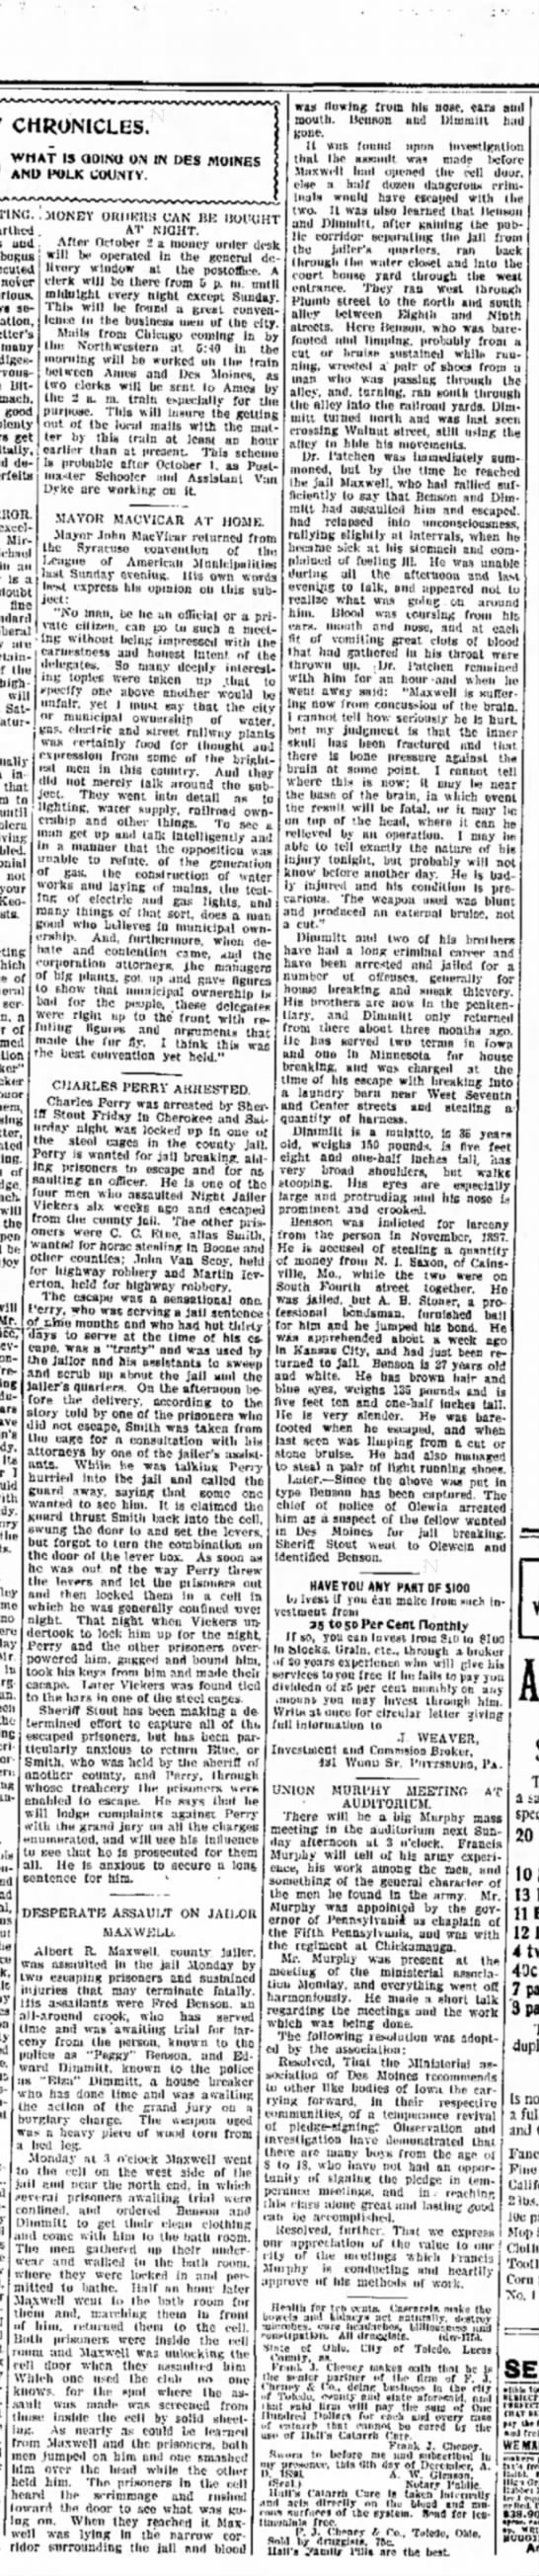 Dimmitts - crime 28 Sept 1899 The Des Moines Gazette - CHRONICLES. WHAT IS GOING ON IN DES MOINES AND...